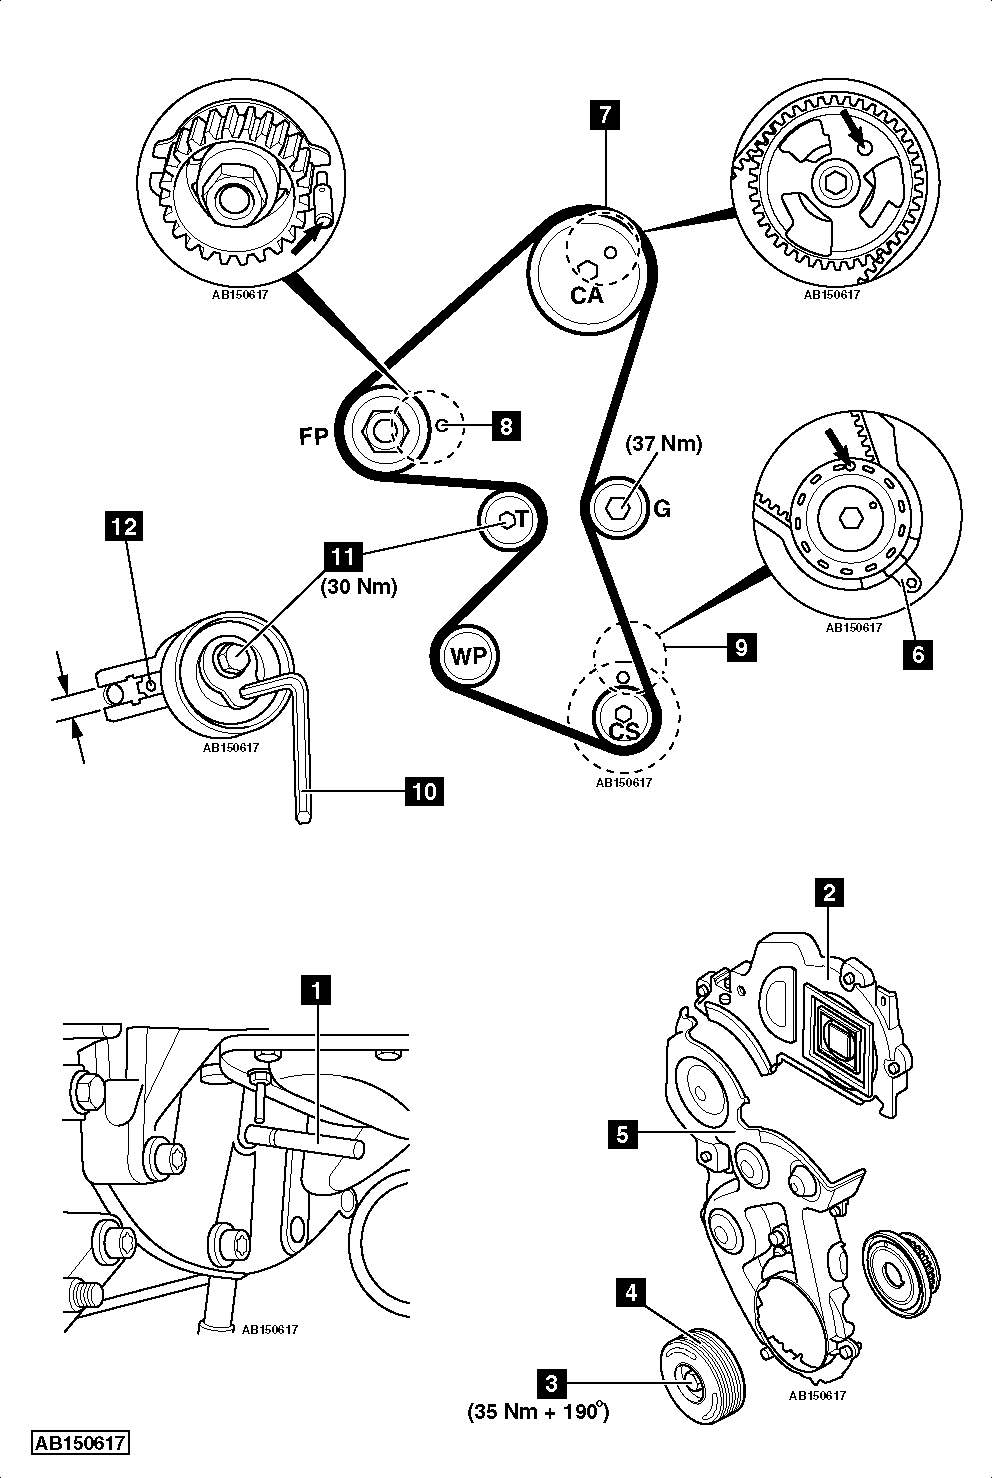 [DIAGRAM] Citroen C3 1 4 Hdi Wiring Electrical Diagrams